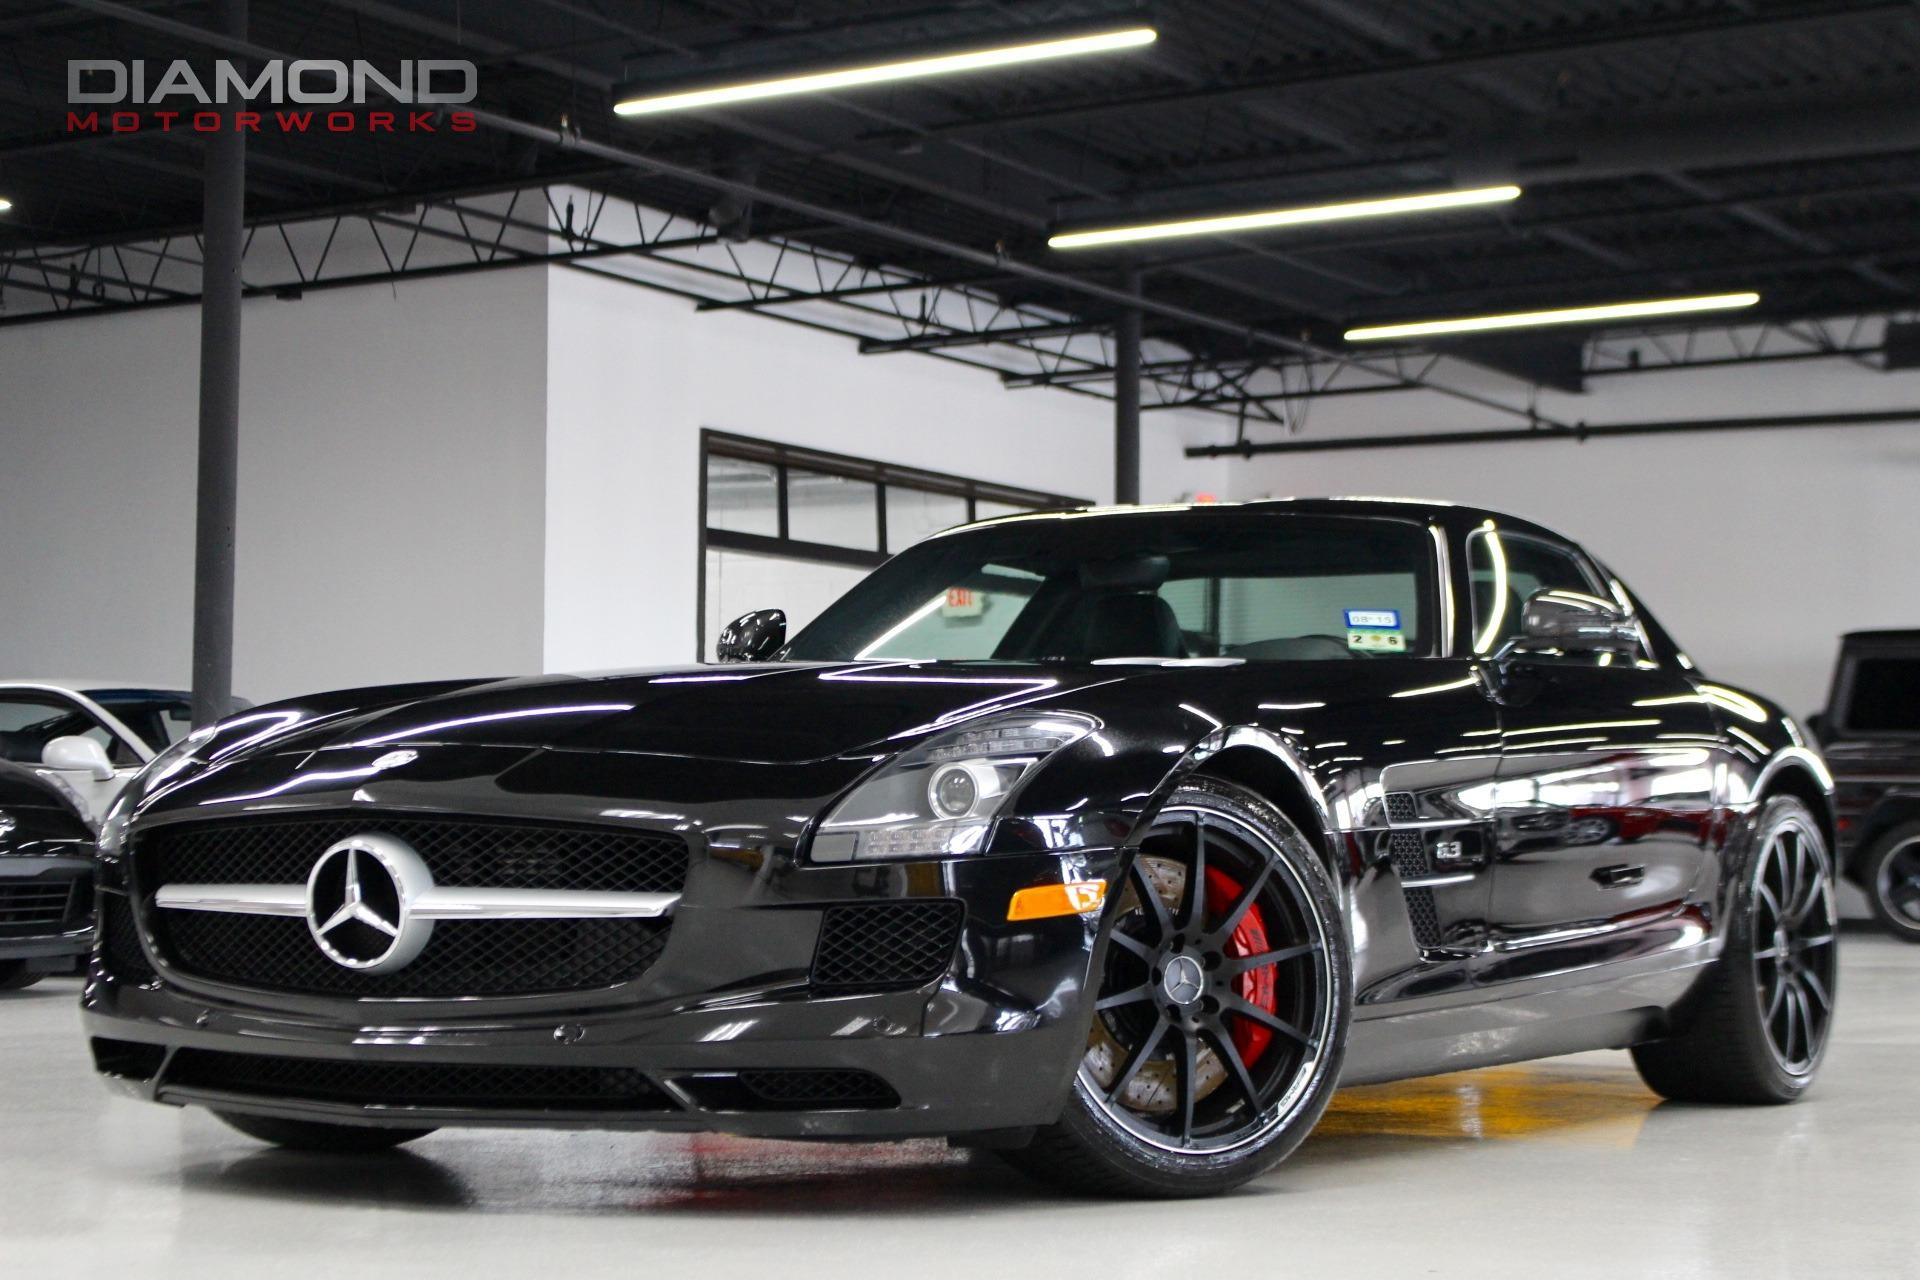 Used-2012-Mercedes-Benz-SLS-AMG-Gullwing-Coupe